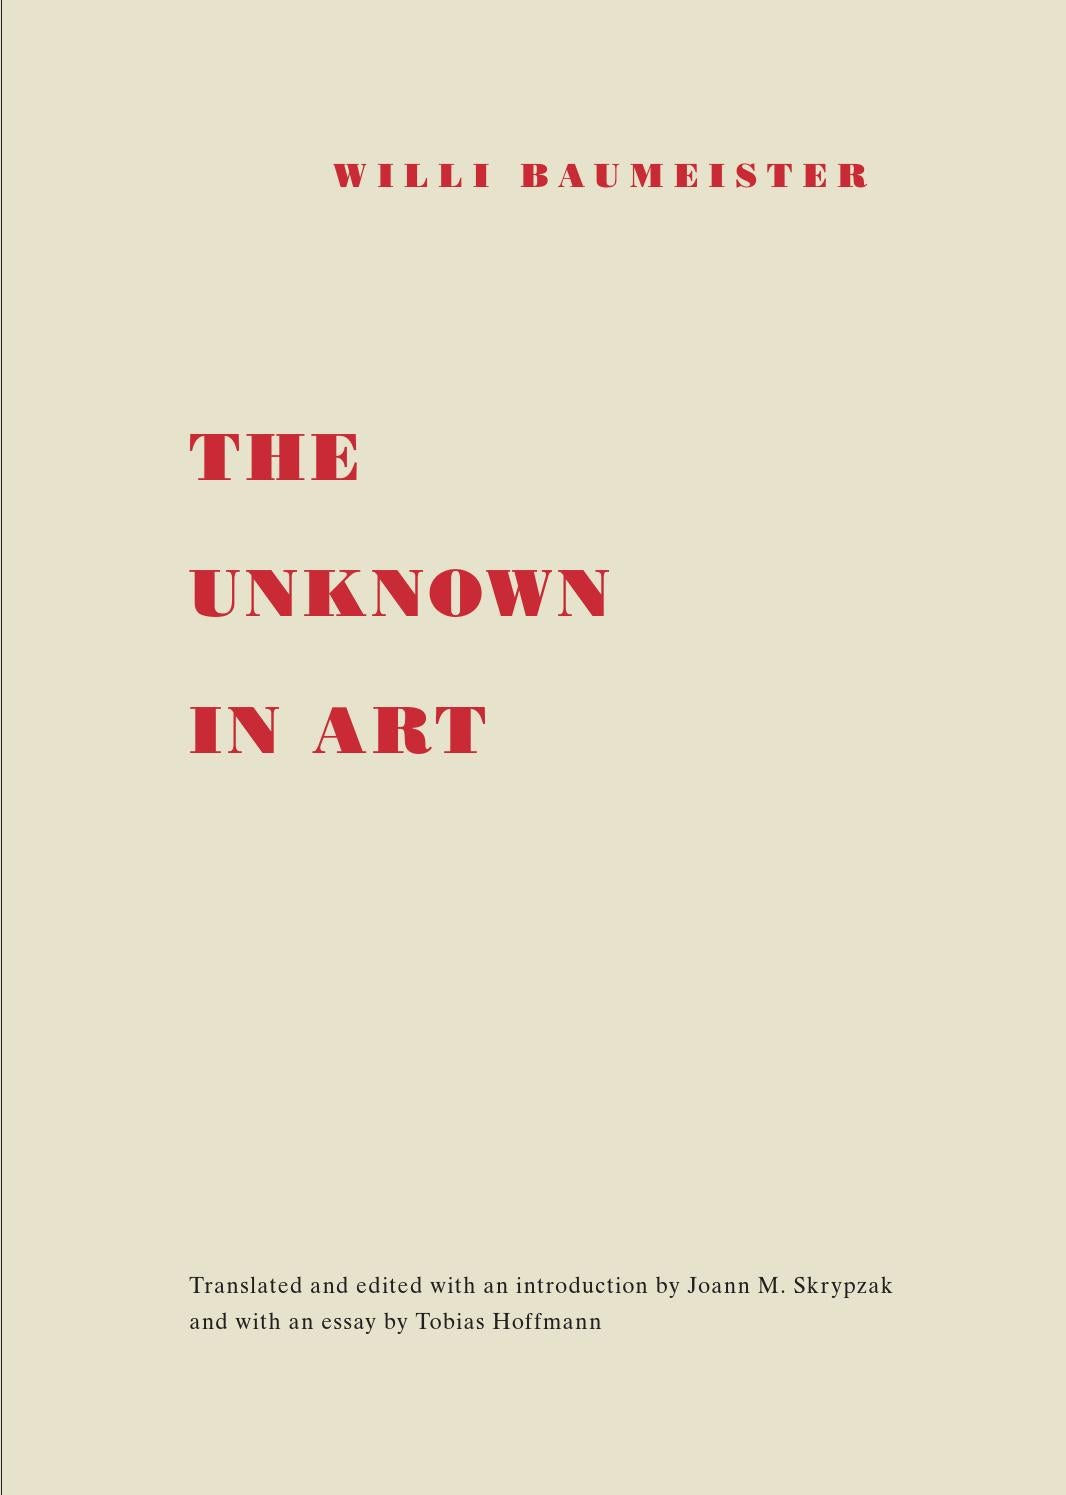 Willi Baumeister The Unknown In Art By Willi Baumeister Stiftung Issuu